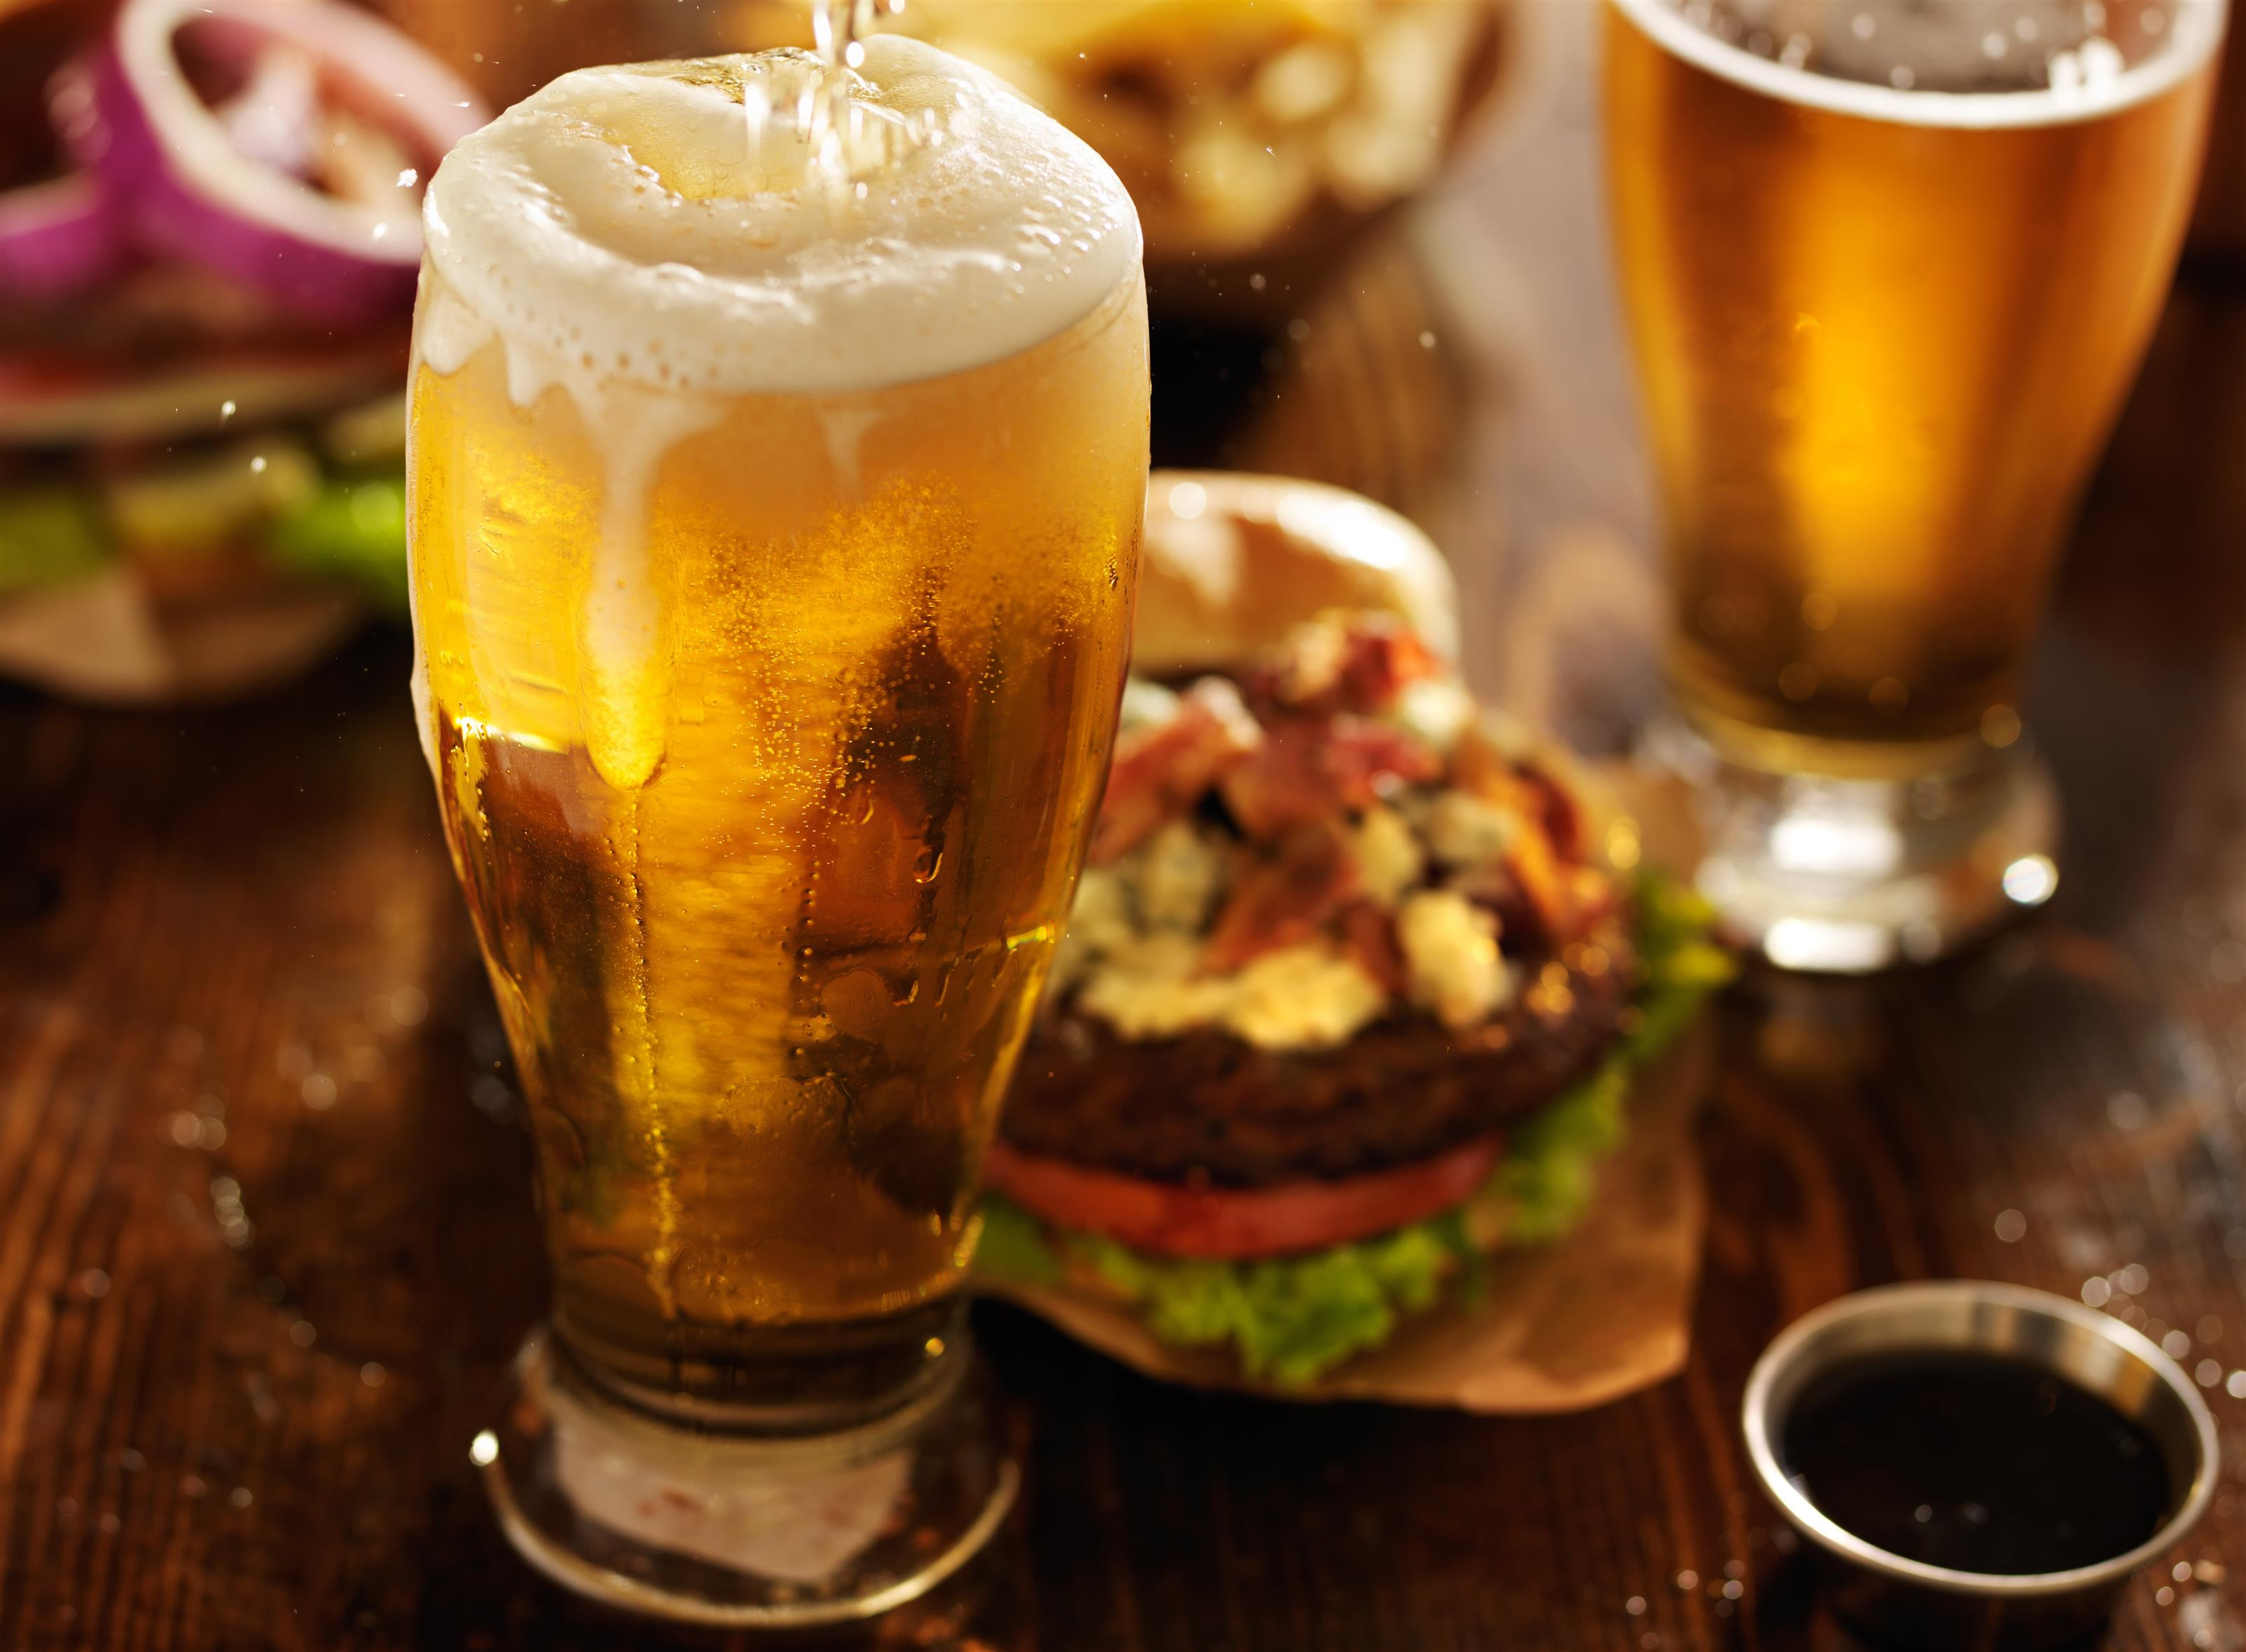 hamburger and a beer in a glass